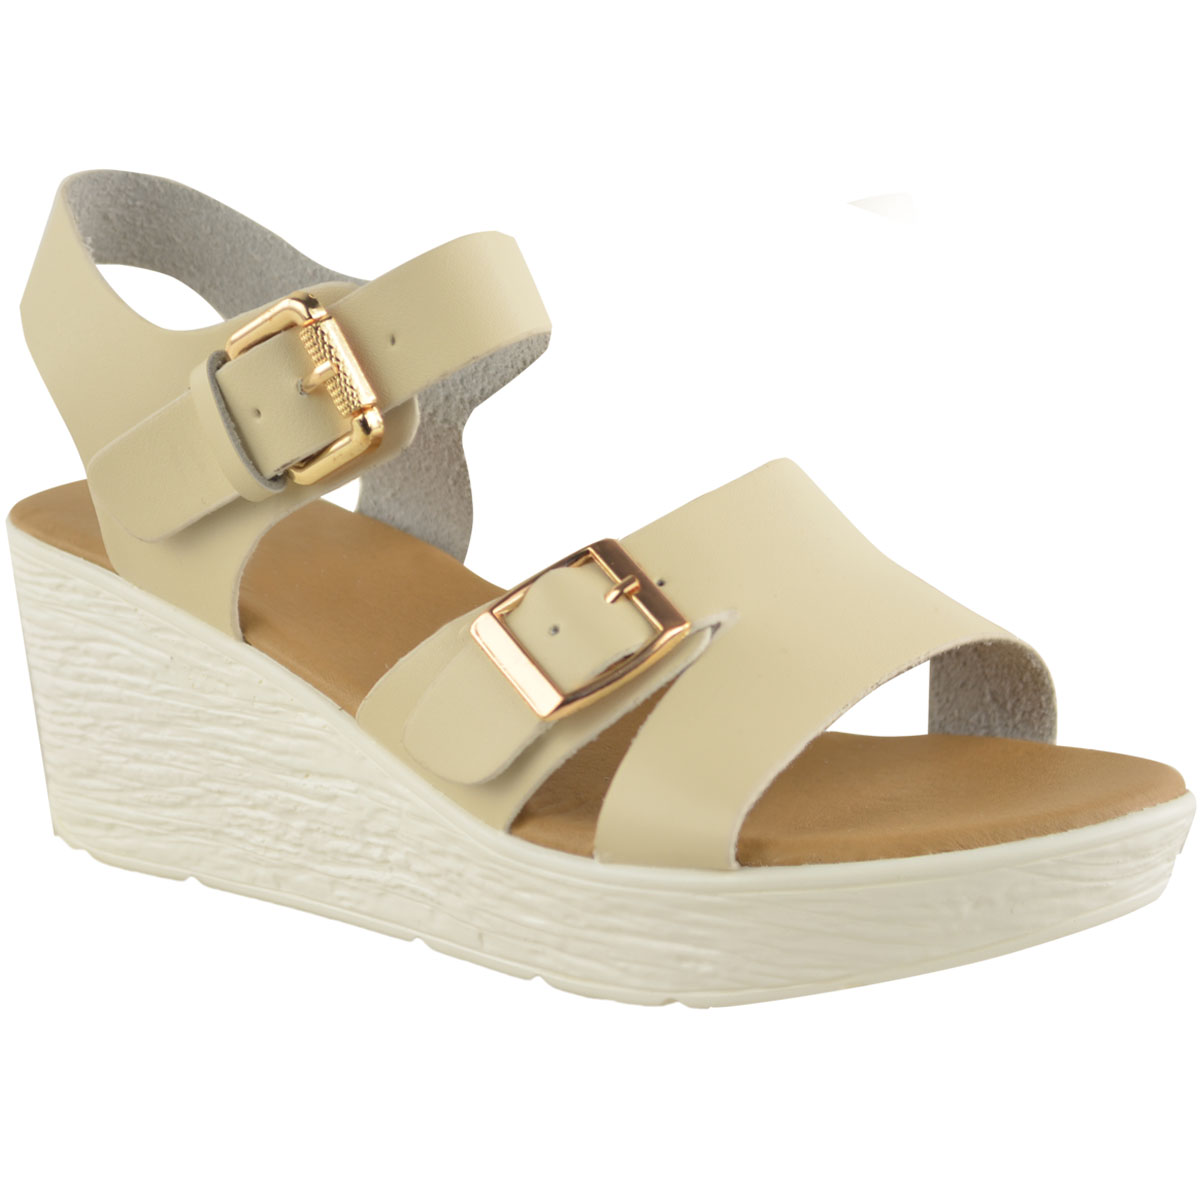 New Womens Ladies Low Wedge Sandals Strappy Summer Wide